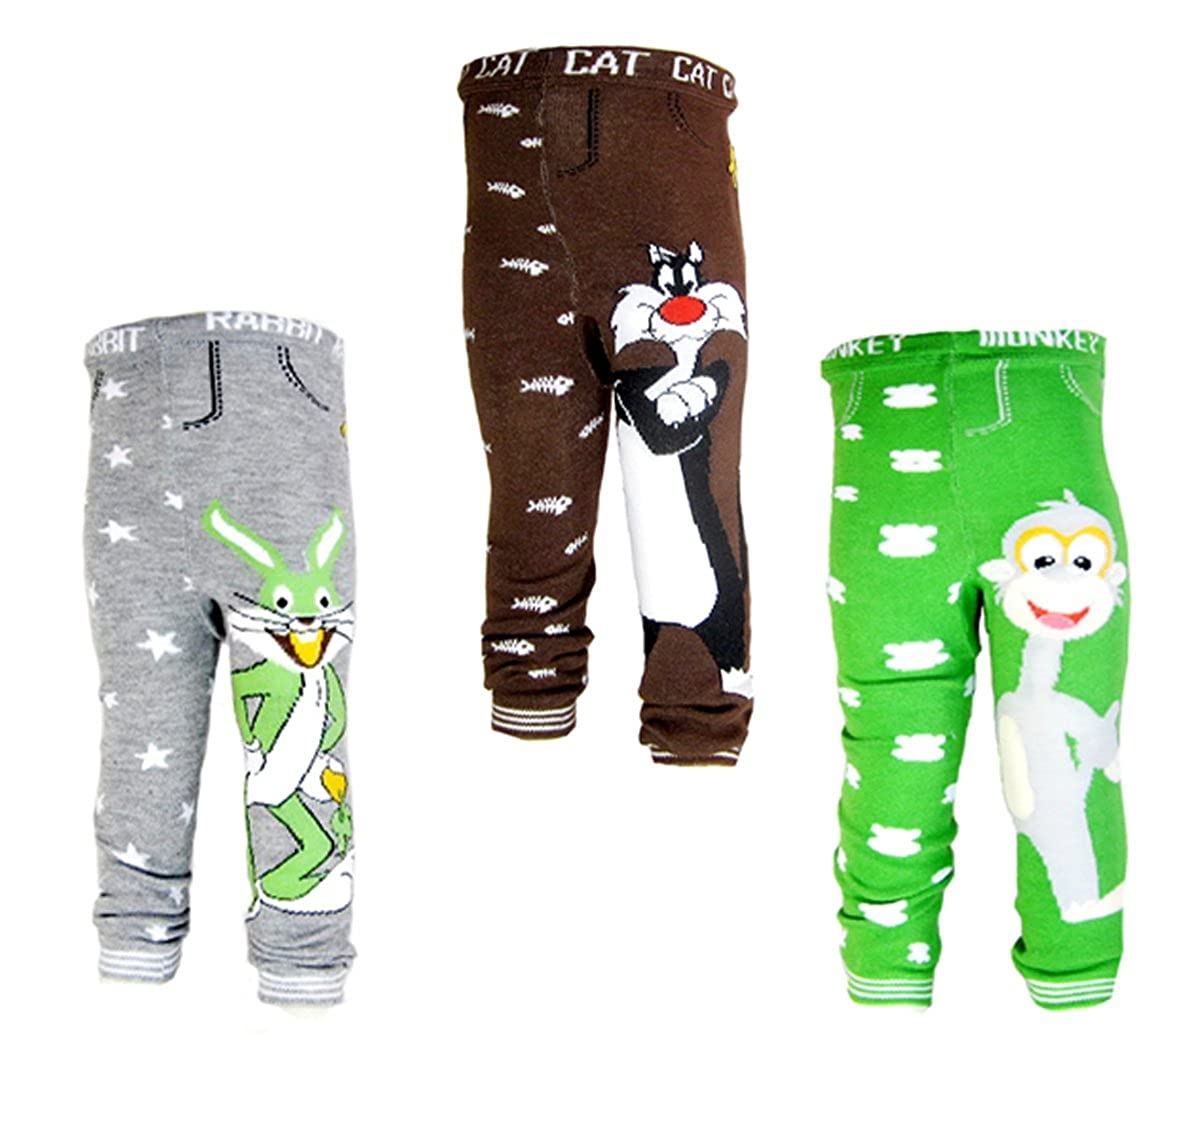 3 backbuy hose 0-24 monate baby Jungen kleinkind leggings hosen hose PD4D5E2